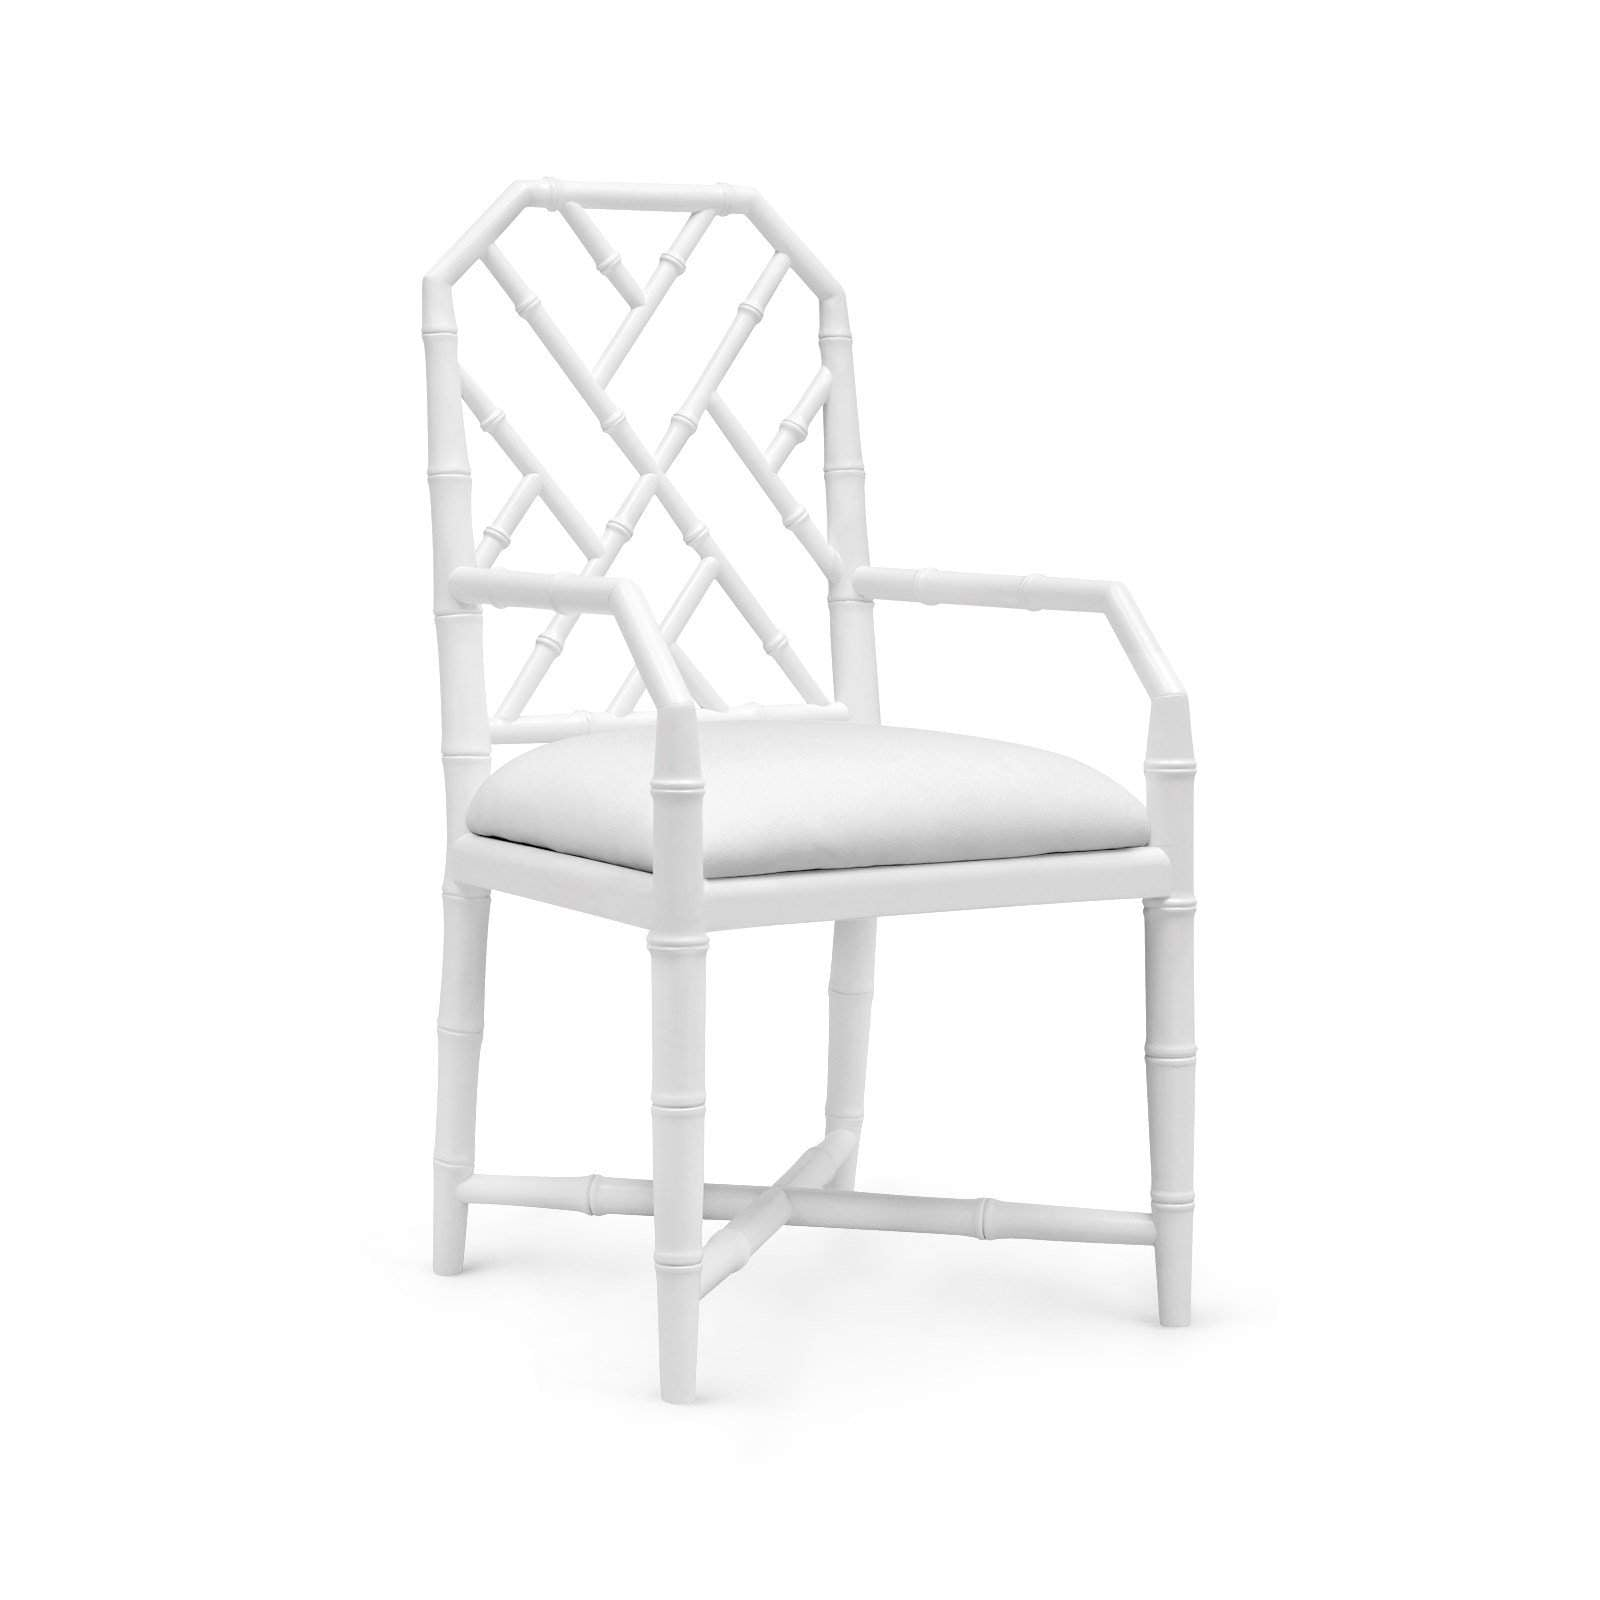 Bungalow 5 - JARDIN ARMCHAIR in WHITE